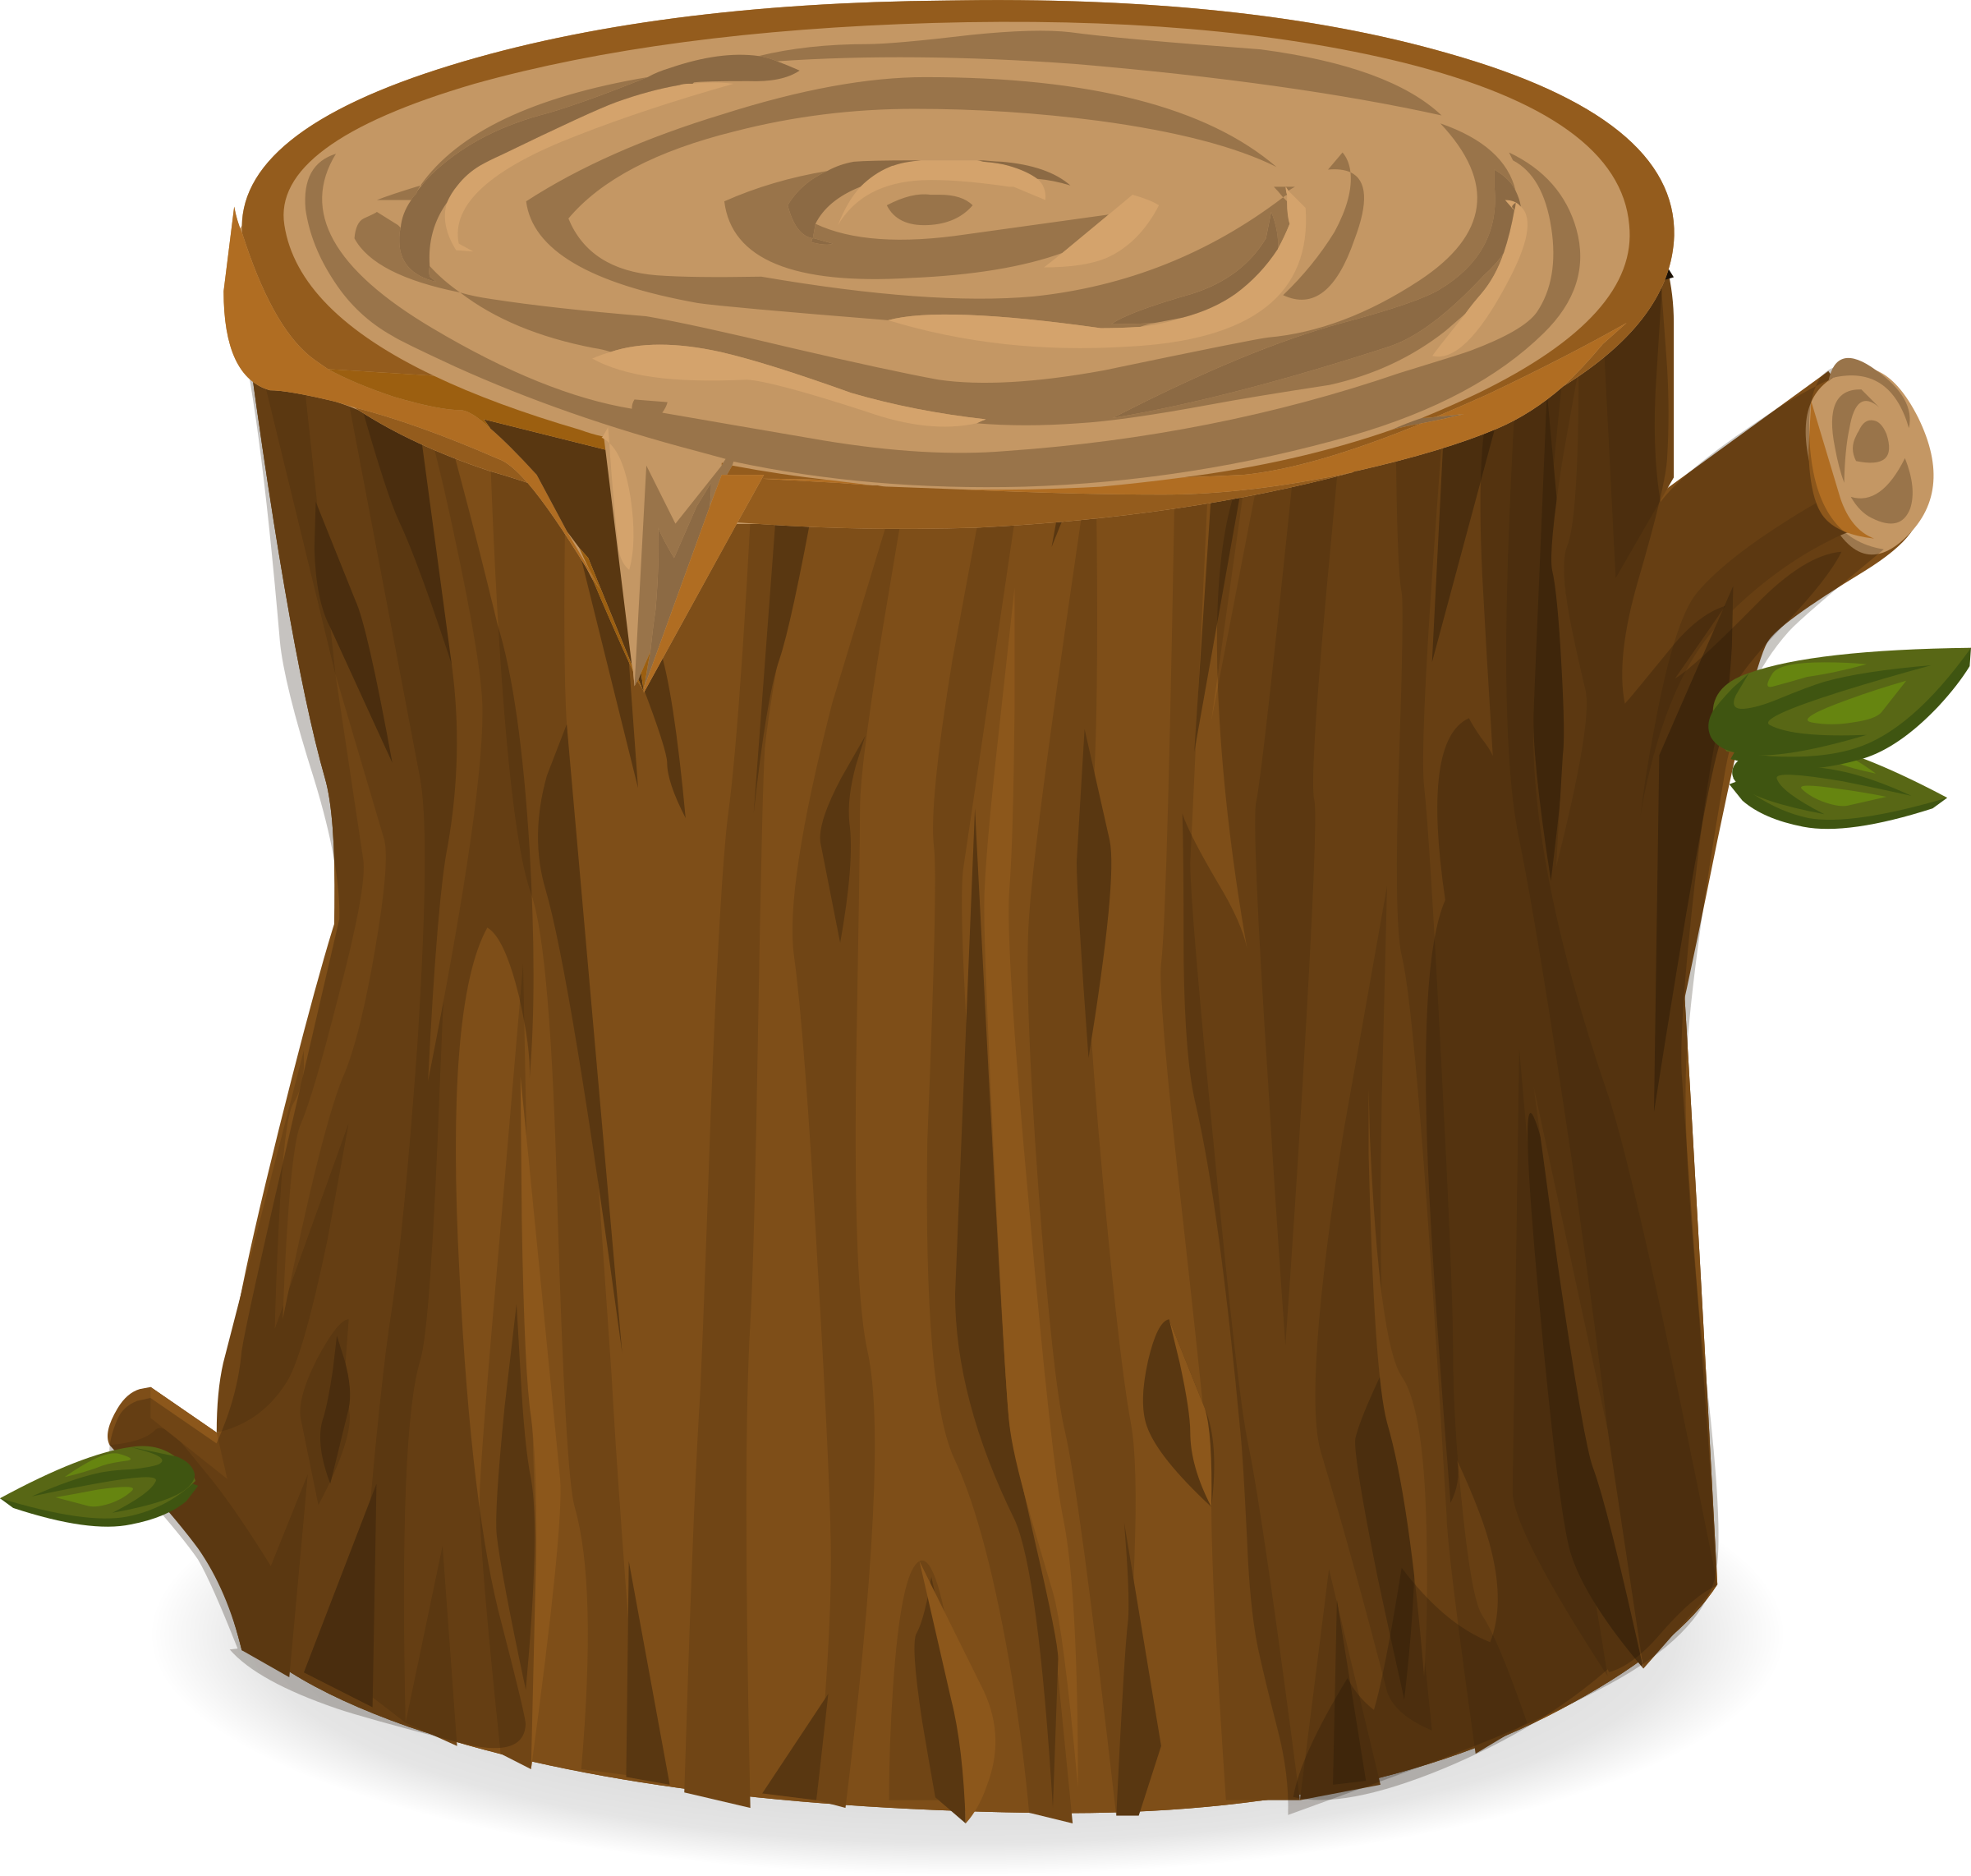 clipart tree stump from glitch tree trunk clip art image tree trunk clip art image